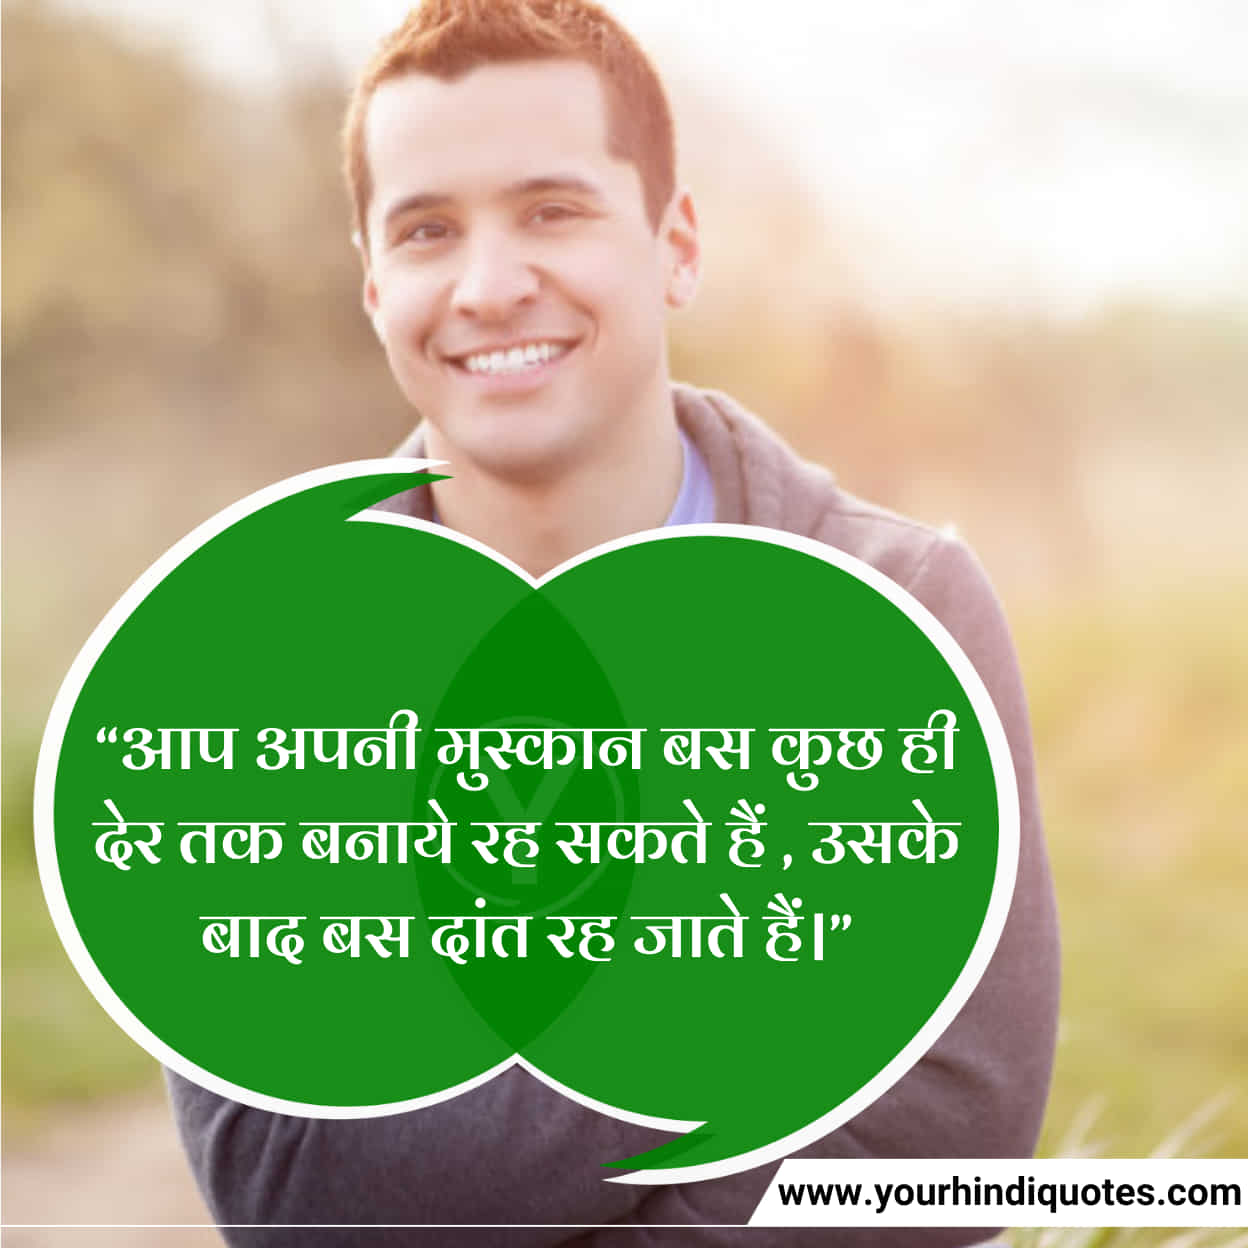 Best Beautiful Smile Quotes In Hindi